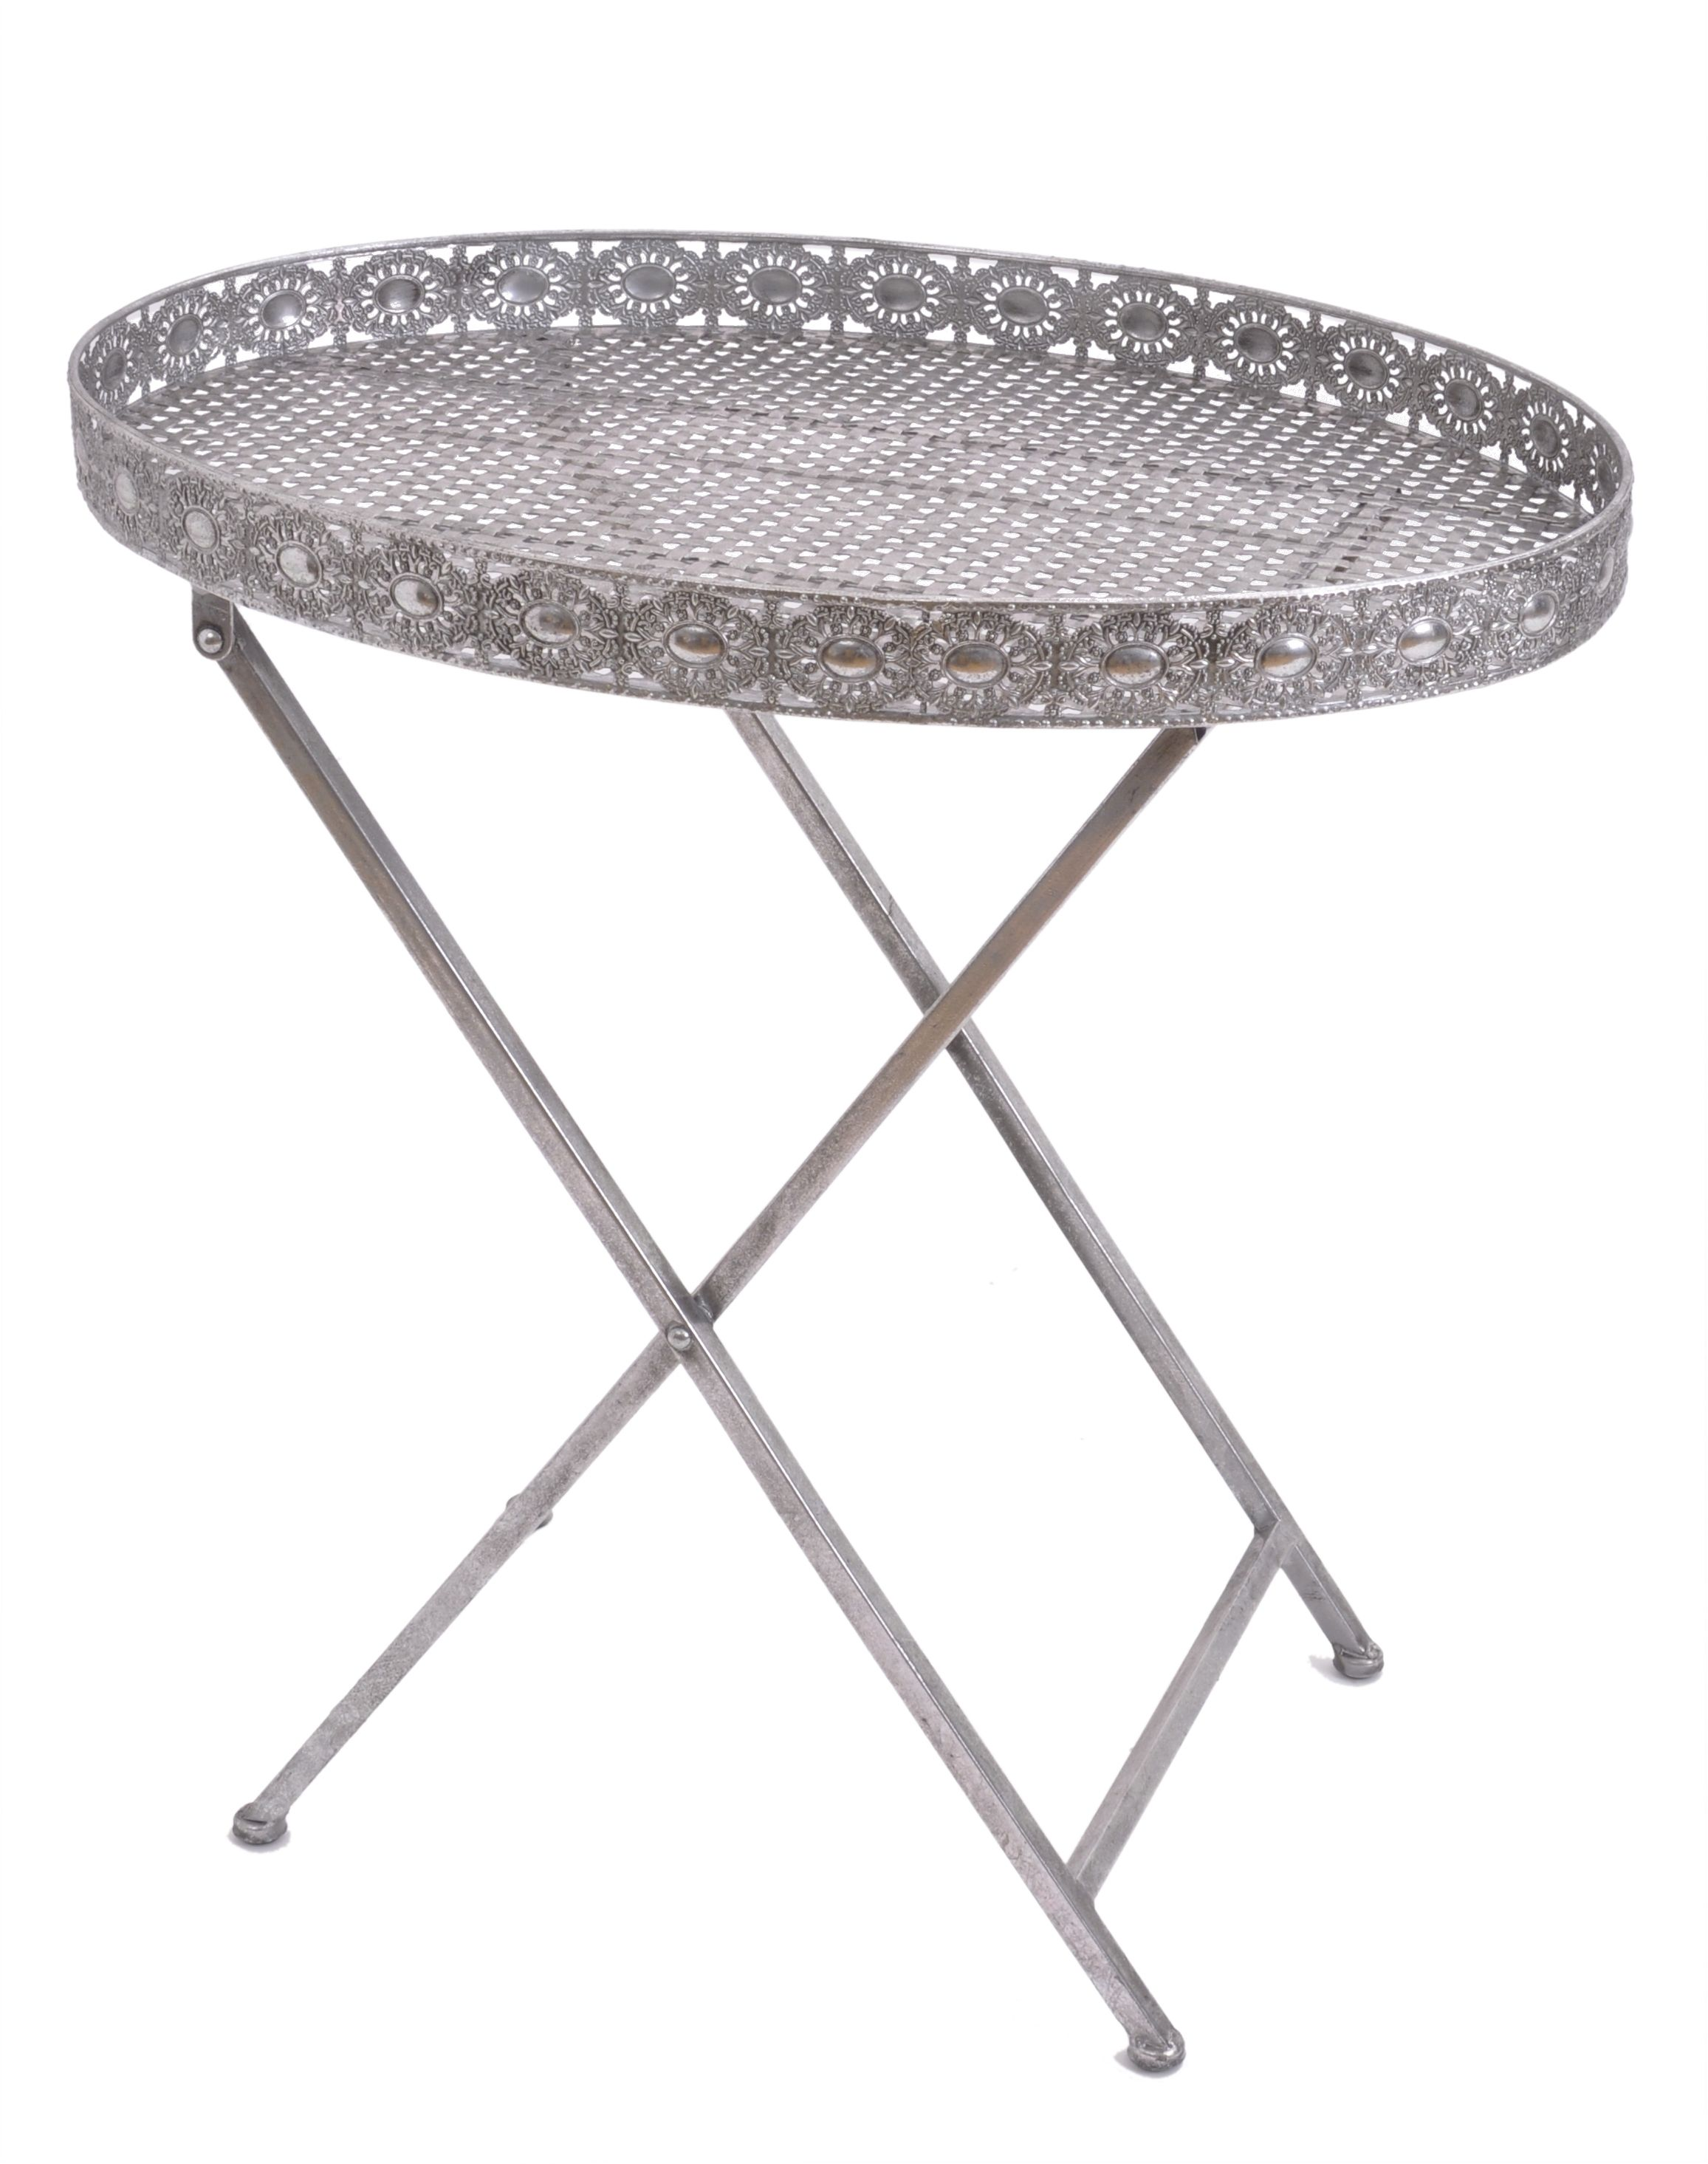 Butler Tray Coffee Table Silver Filigree Tray Table Perfect For The Modern Moroccan Look